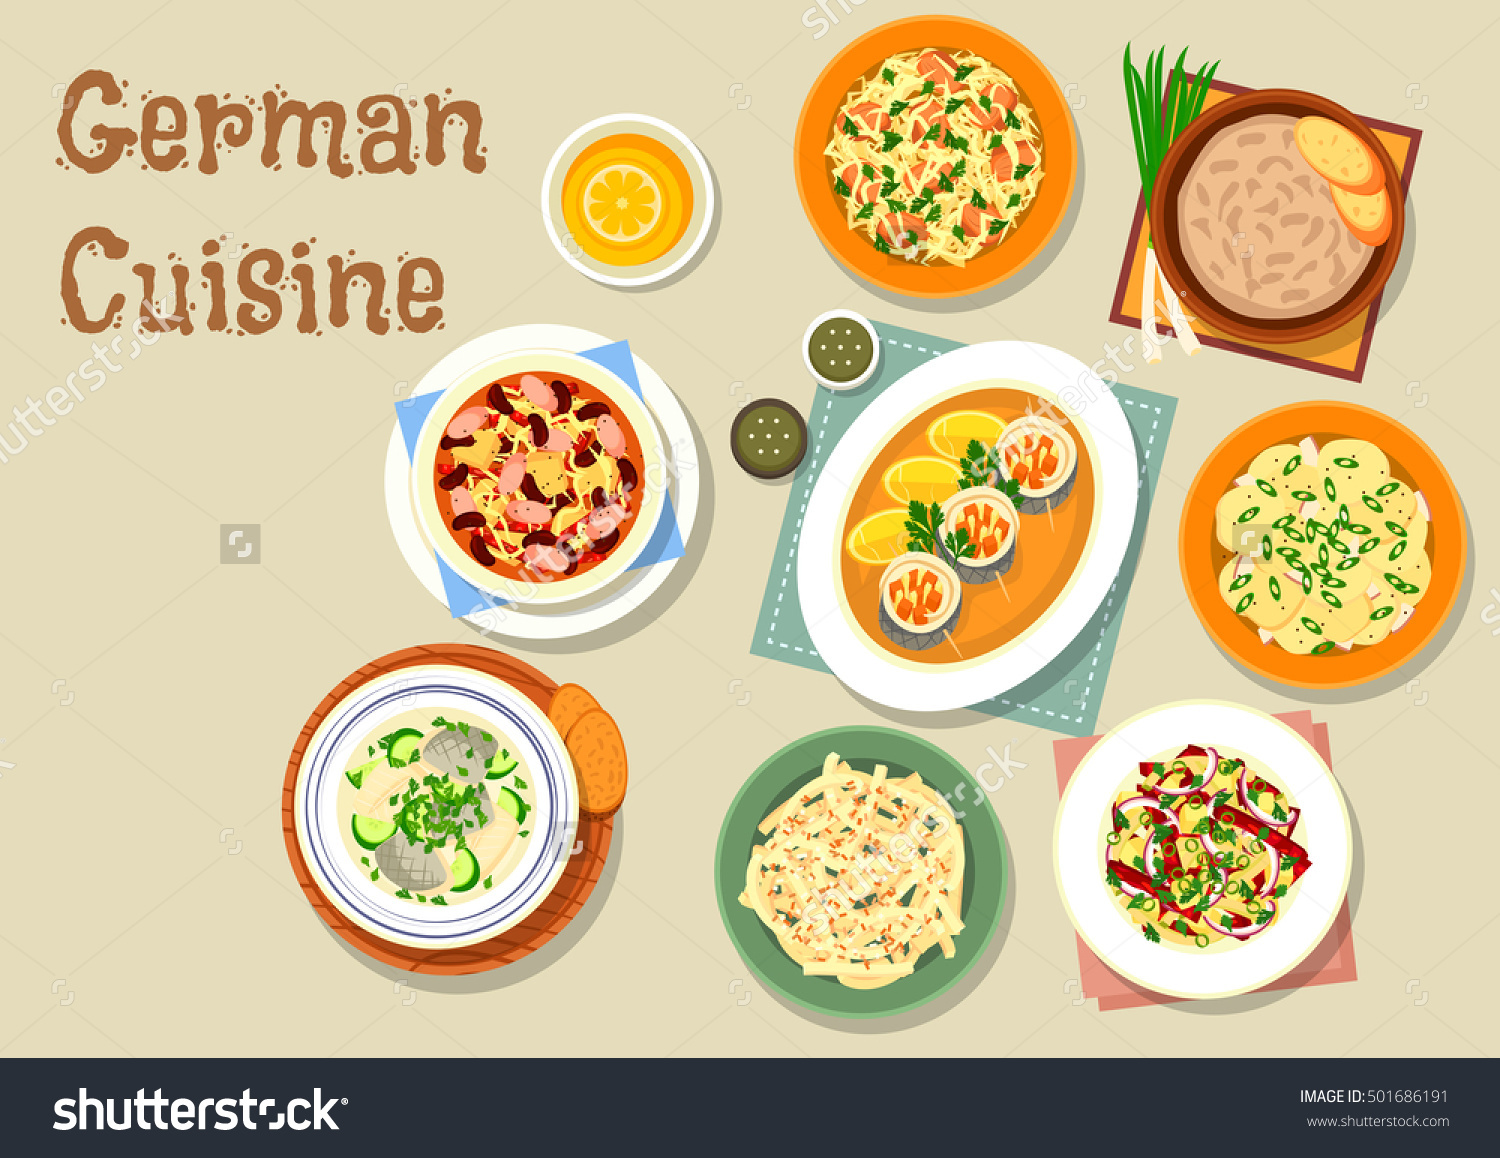 German cuisine bavarian dishes icon of pork and sauerkraut salad.